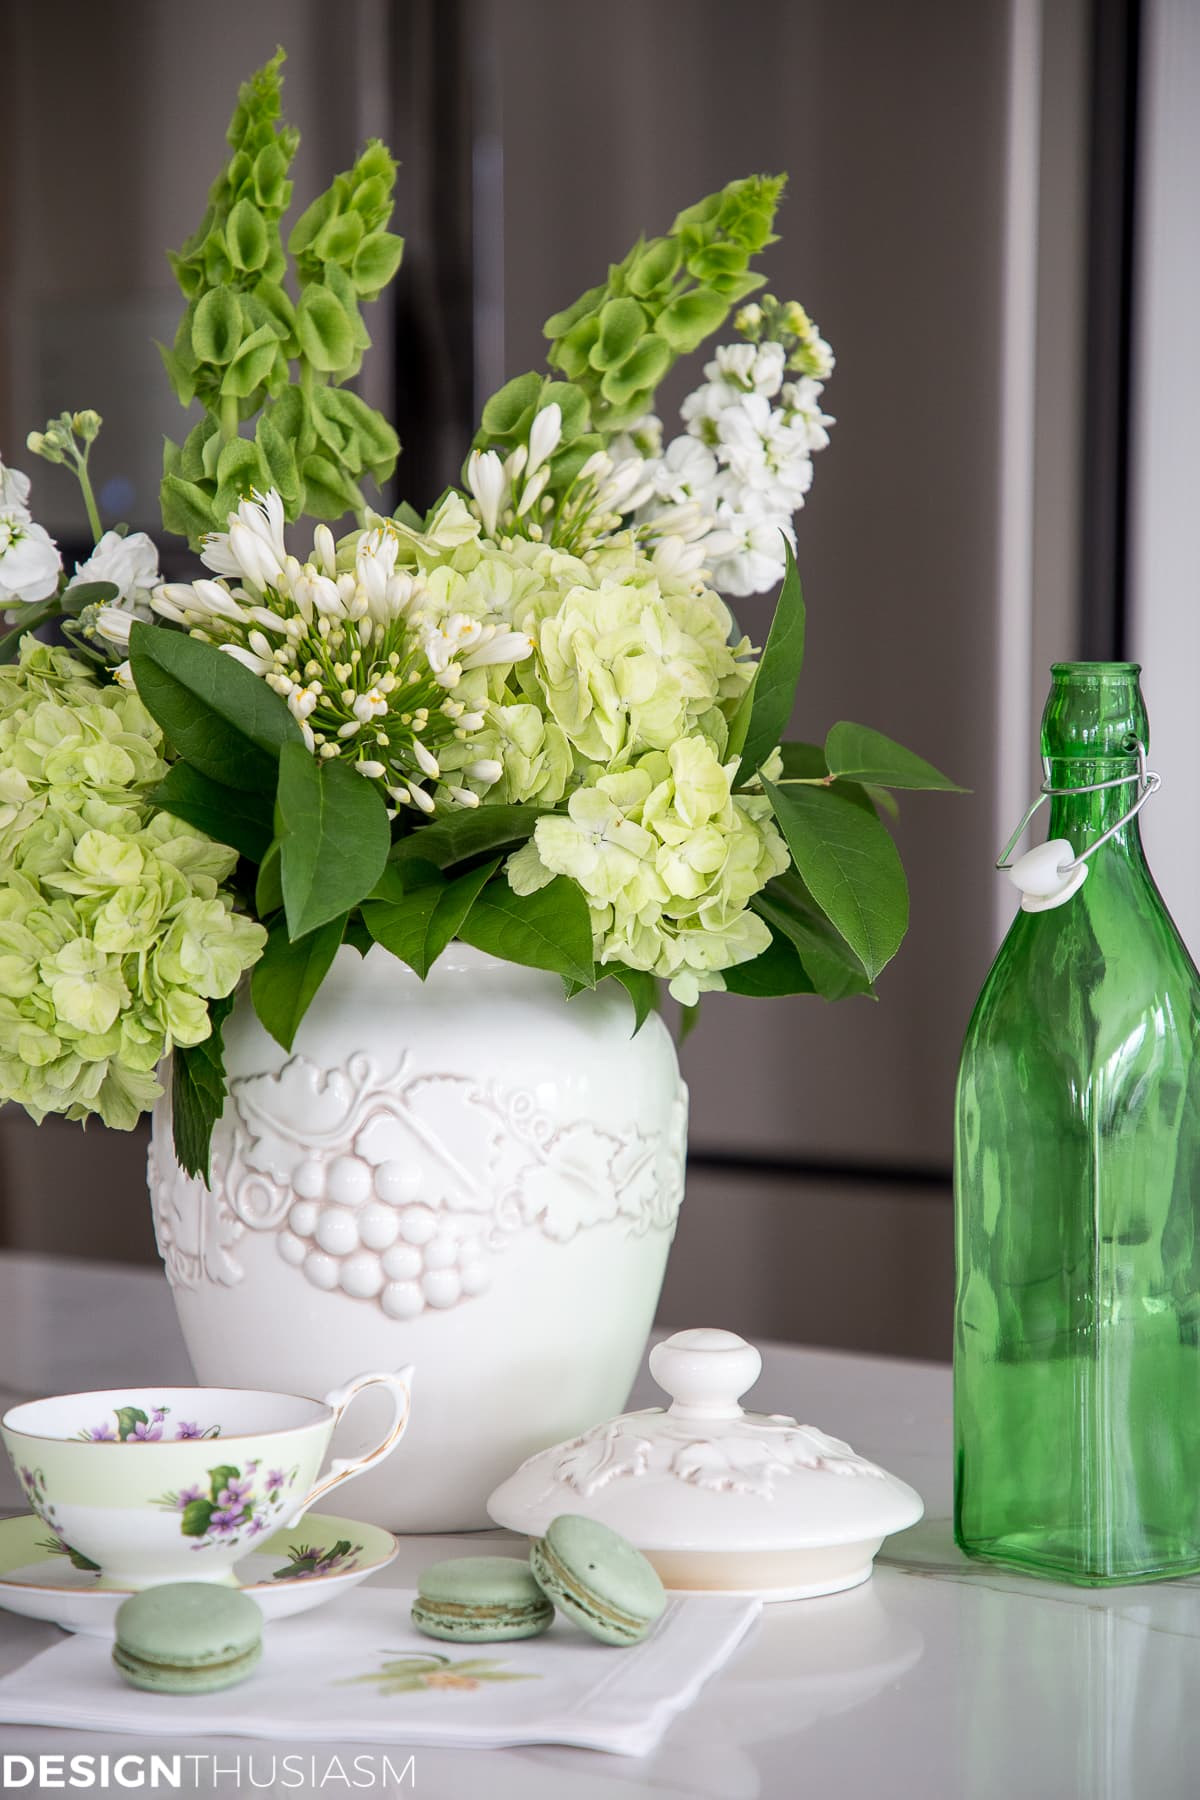 Welcoming Spring with an Arrangement of Green Flowers - designthusiasm.com